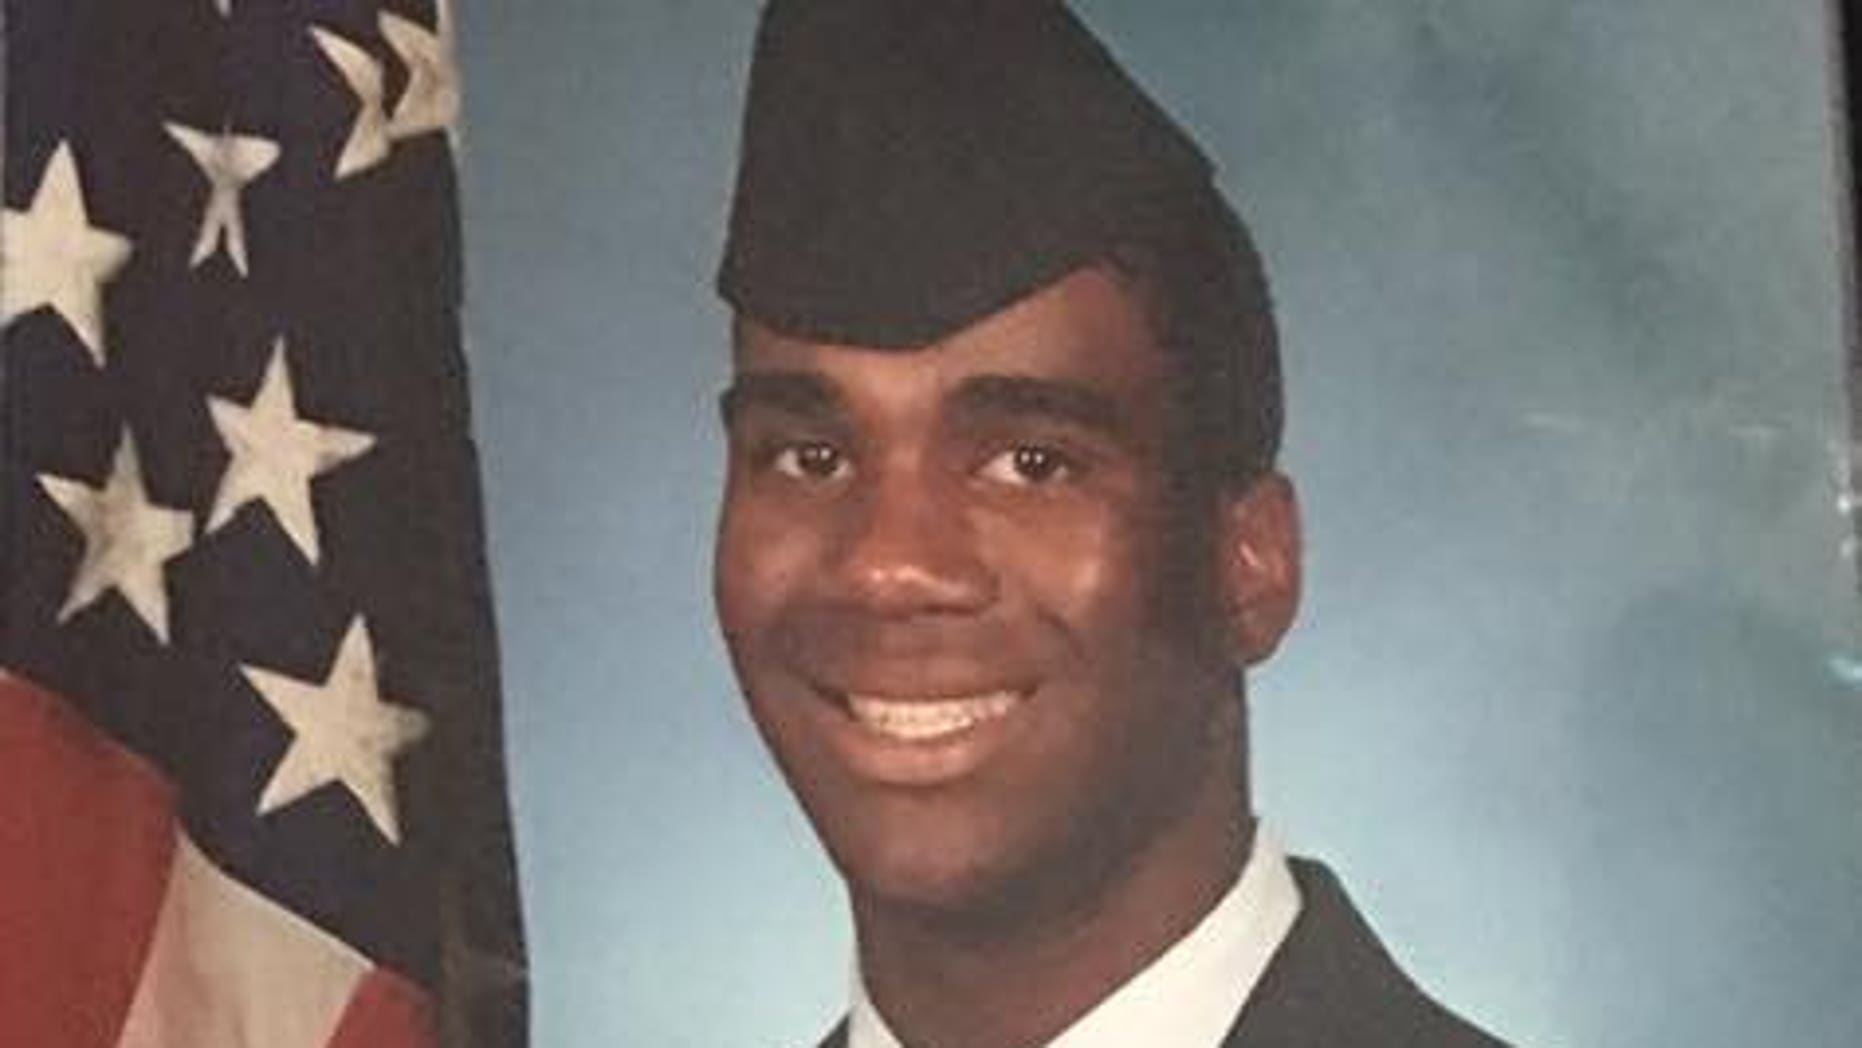 The Air Force veteran, Devin Wilson, was shot and killed over the weekend, his family said.